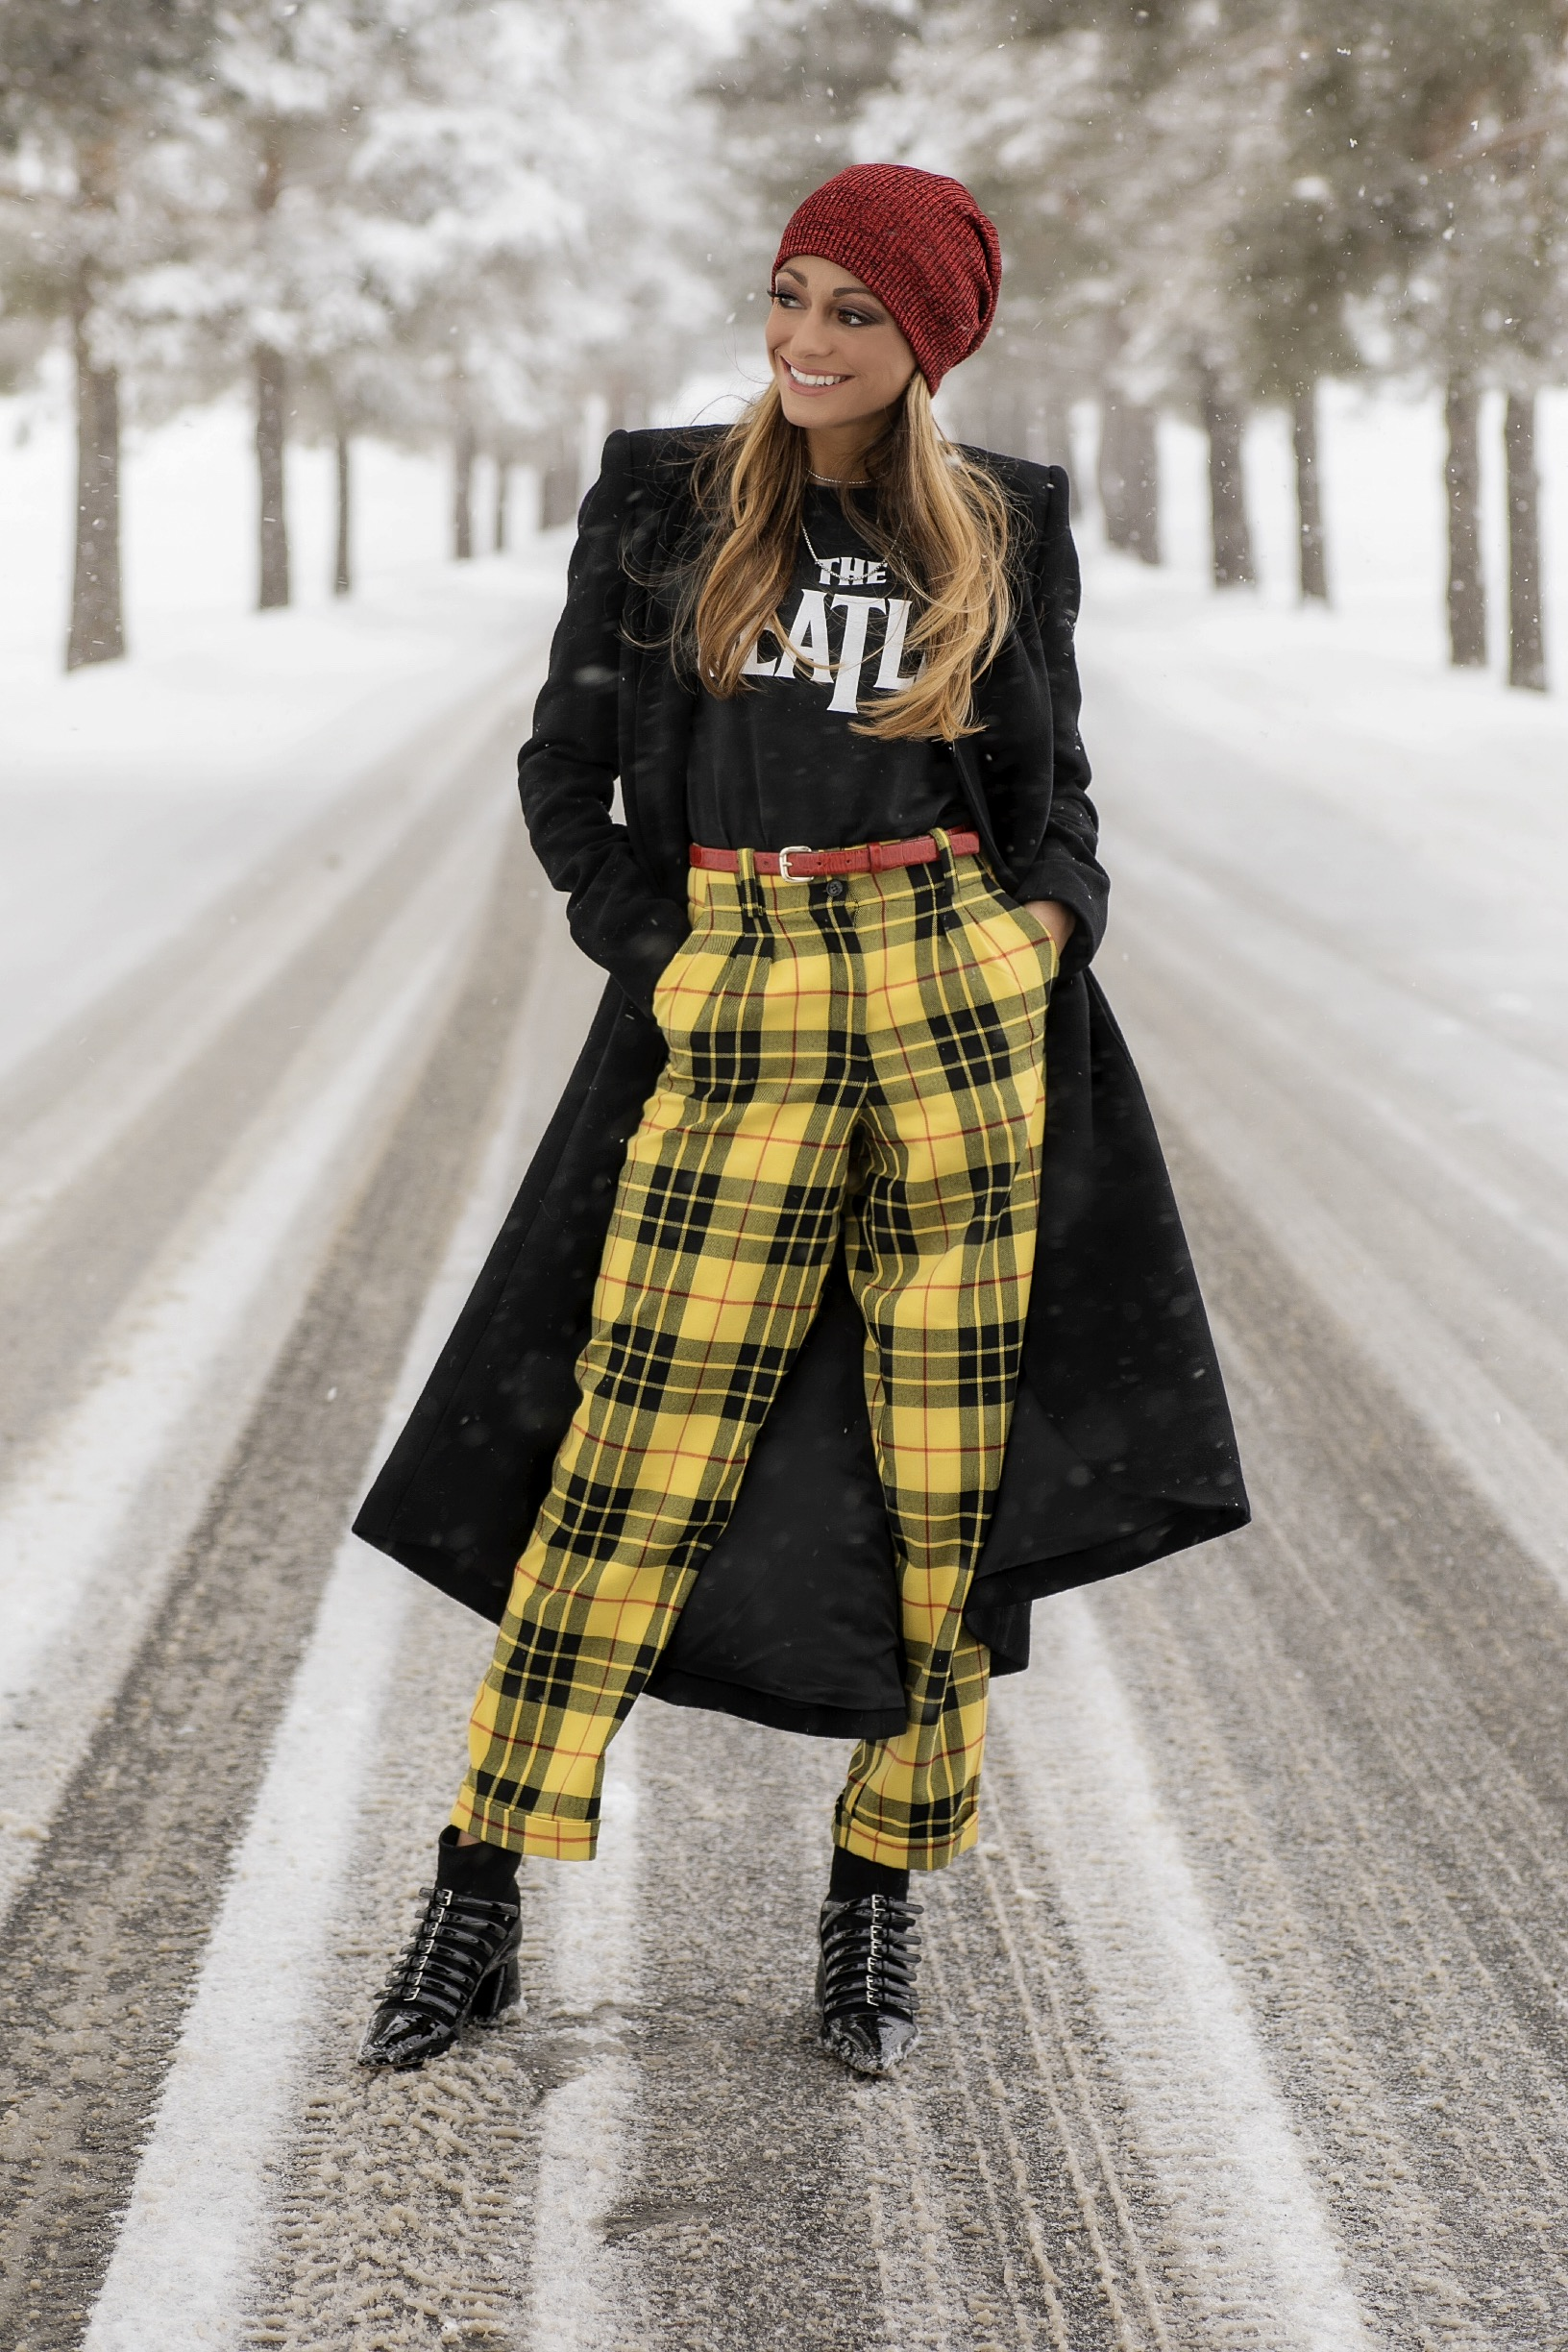 The Beatles Tee worn with yellow checkered mensy trousers on lauren recchia